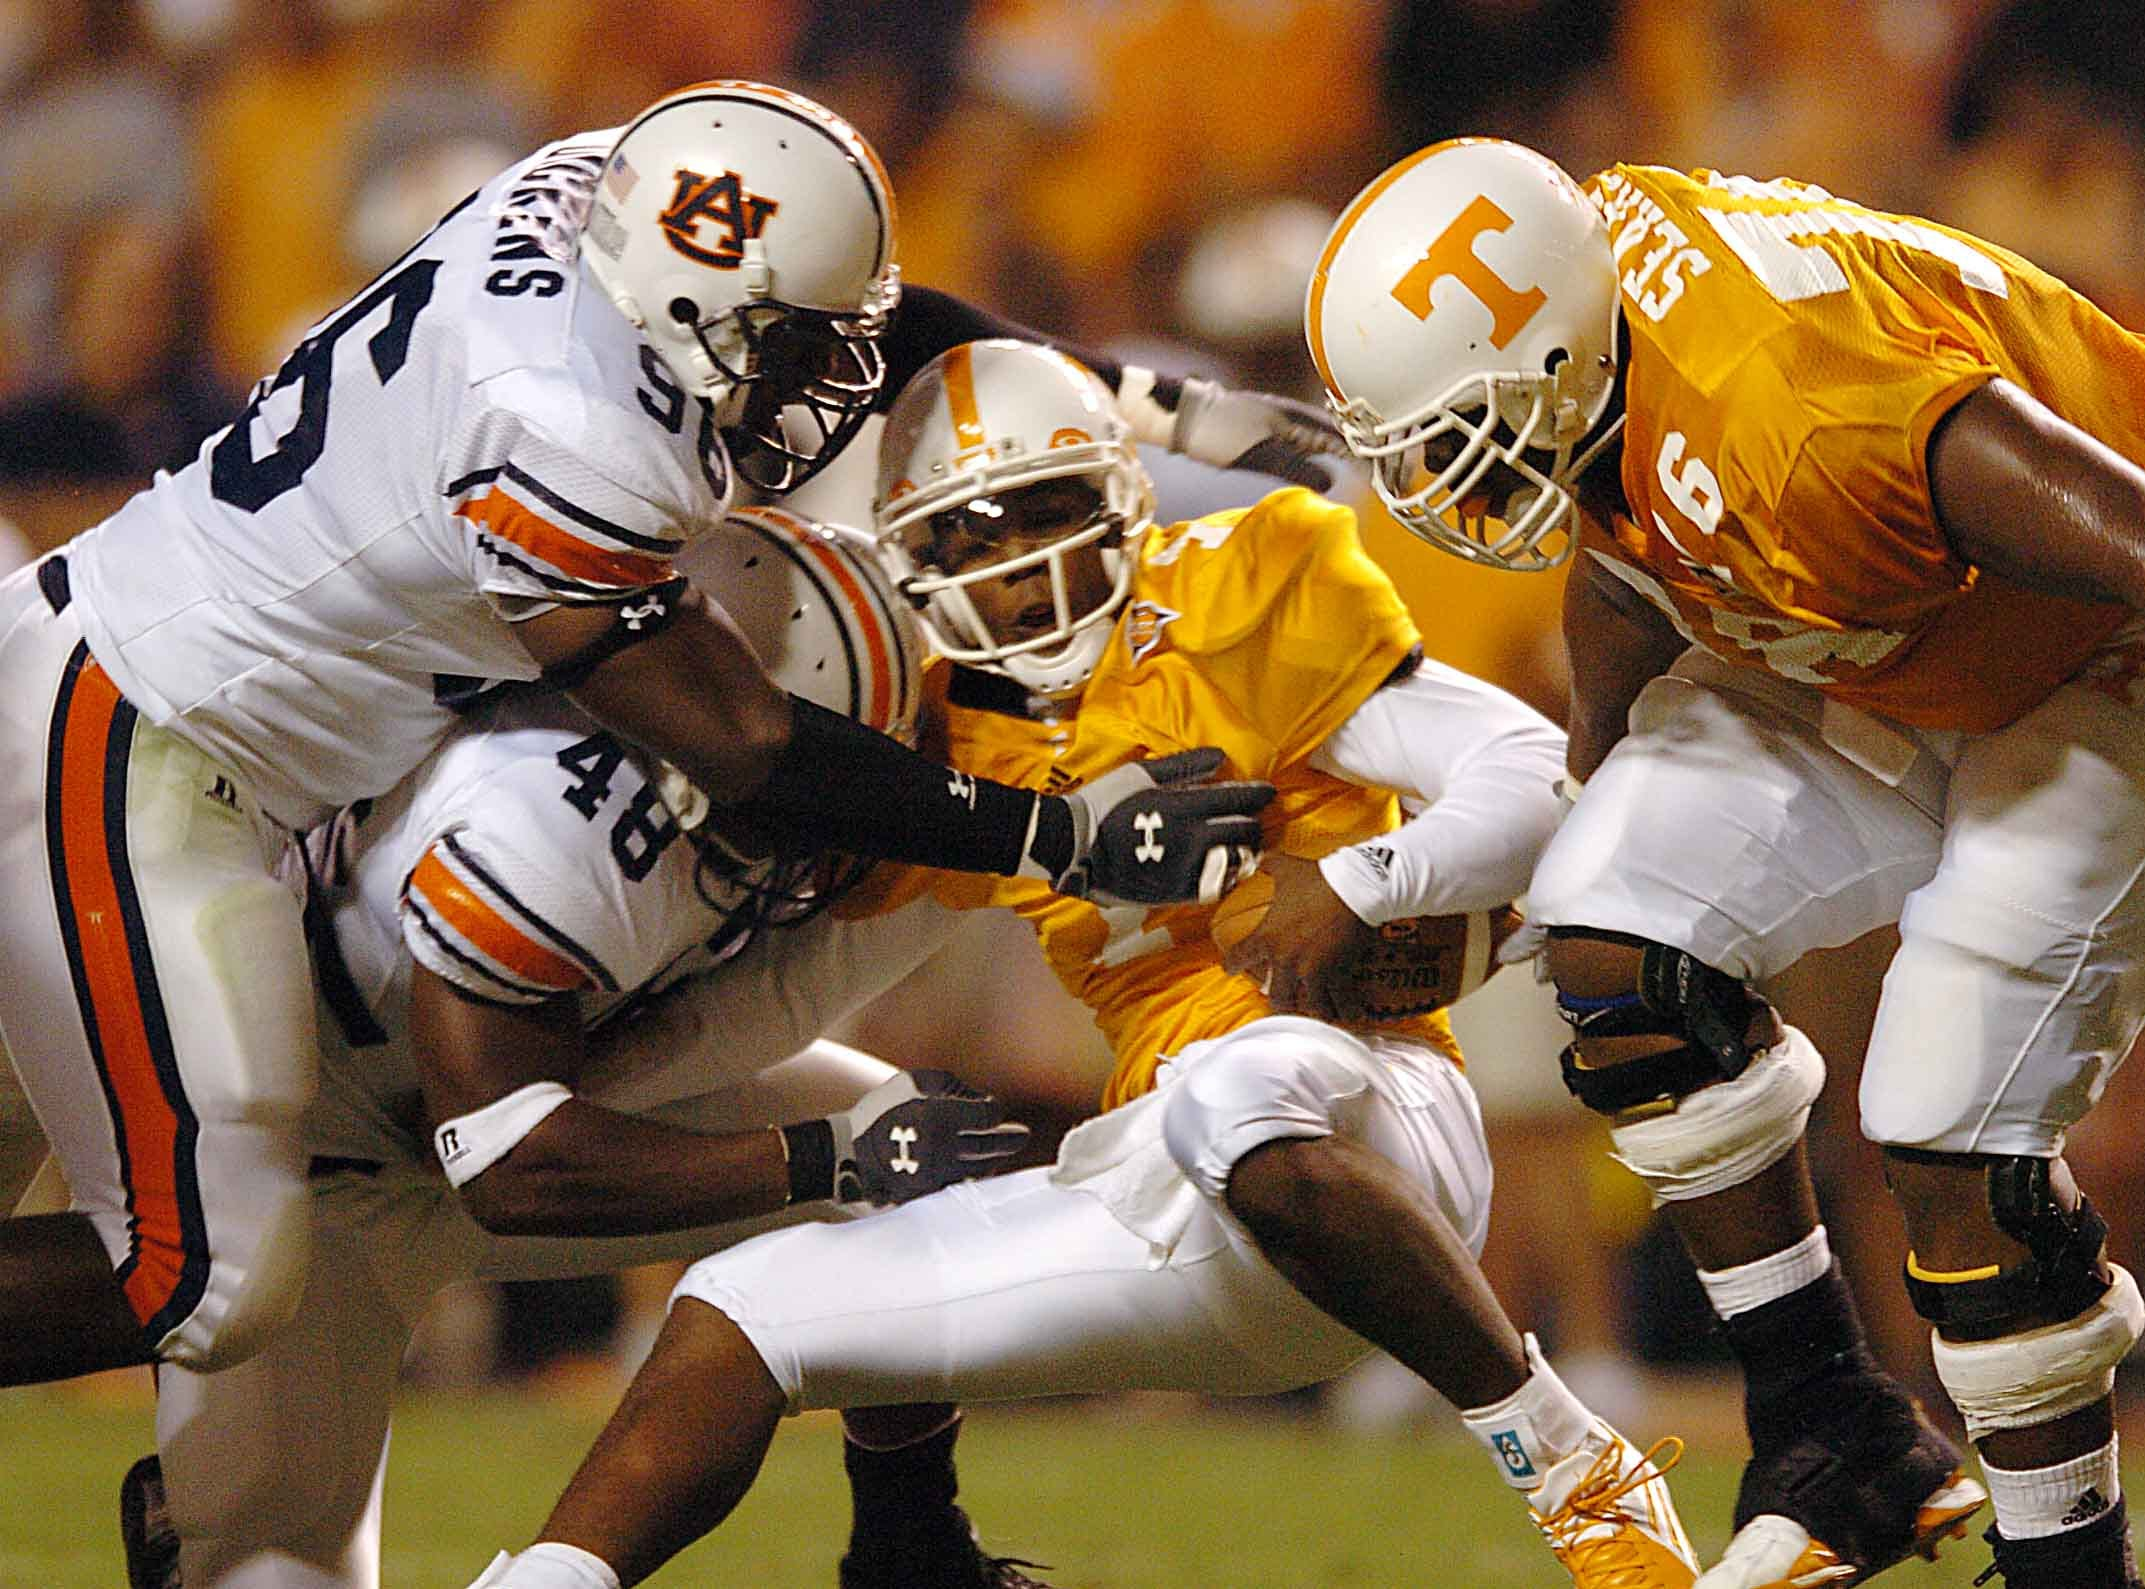 Tennessee quarterback (7) Brent Schaeffer is tackled by Auburn's (48) Marquies Gunn (CQ) and (96) Wayne Dickens during first half action Saturday night in 2004. Tennessee's Arron Sears is at right.